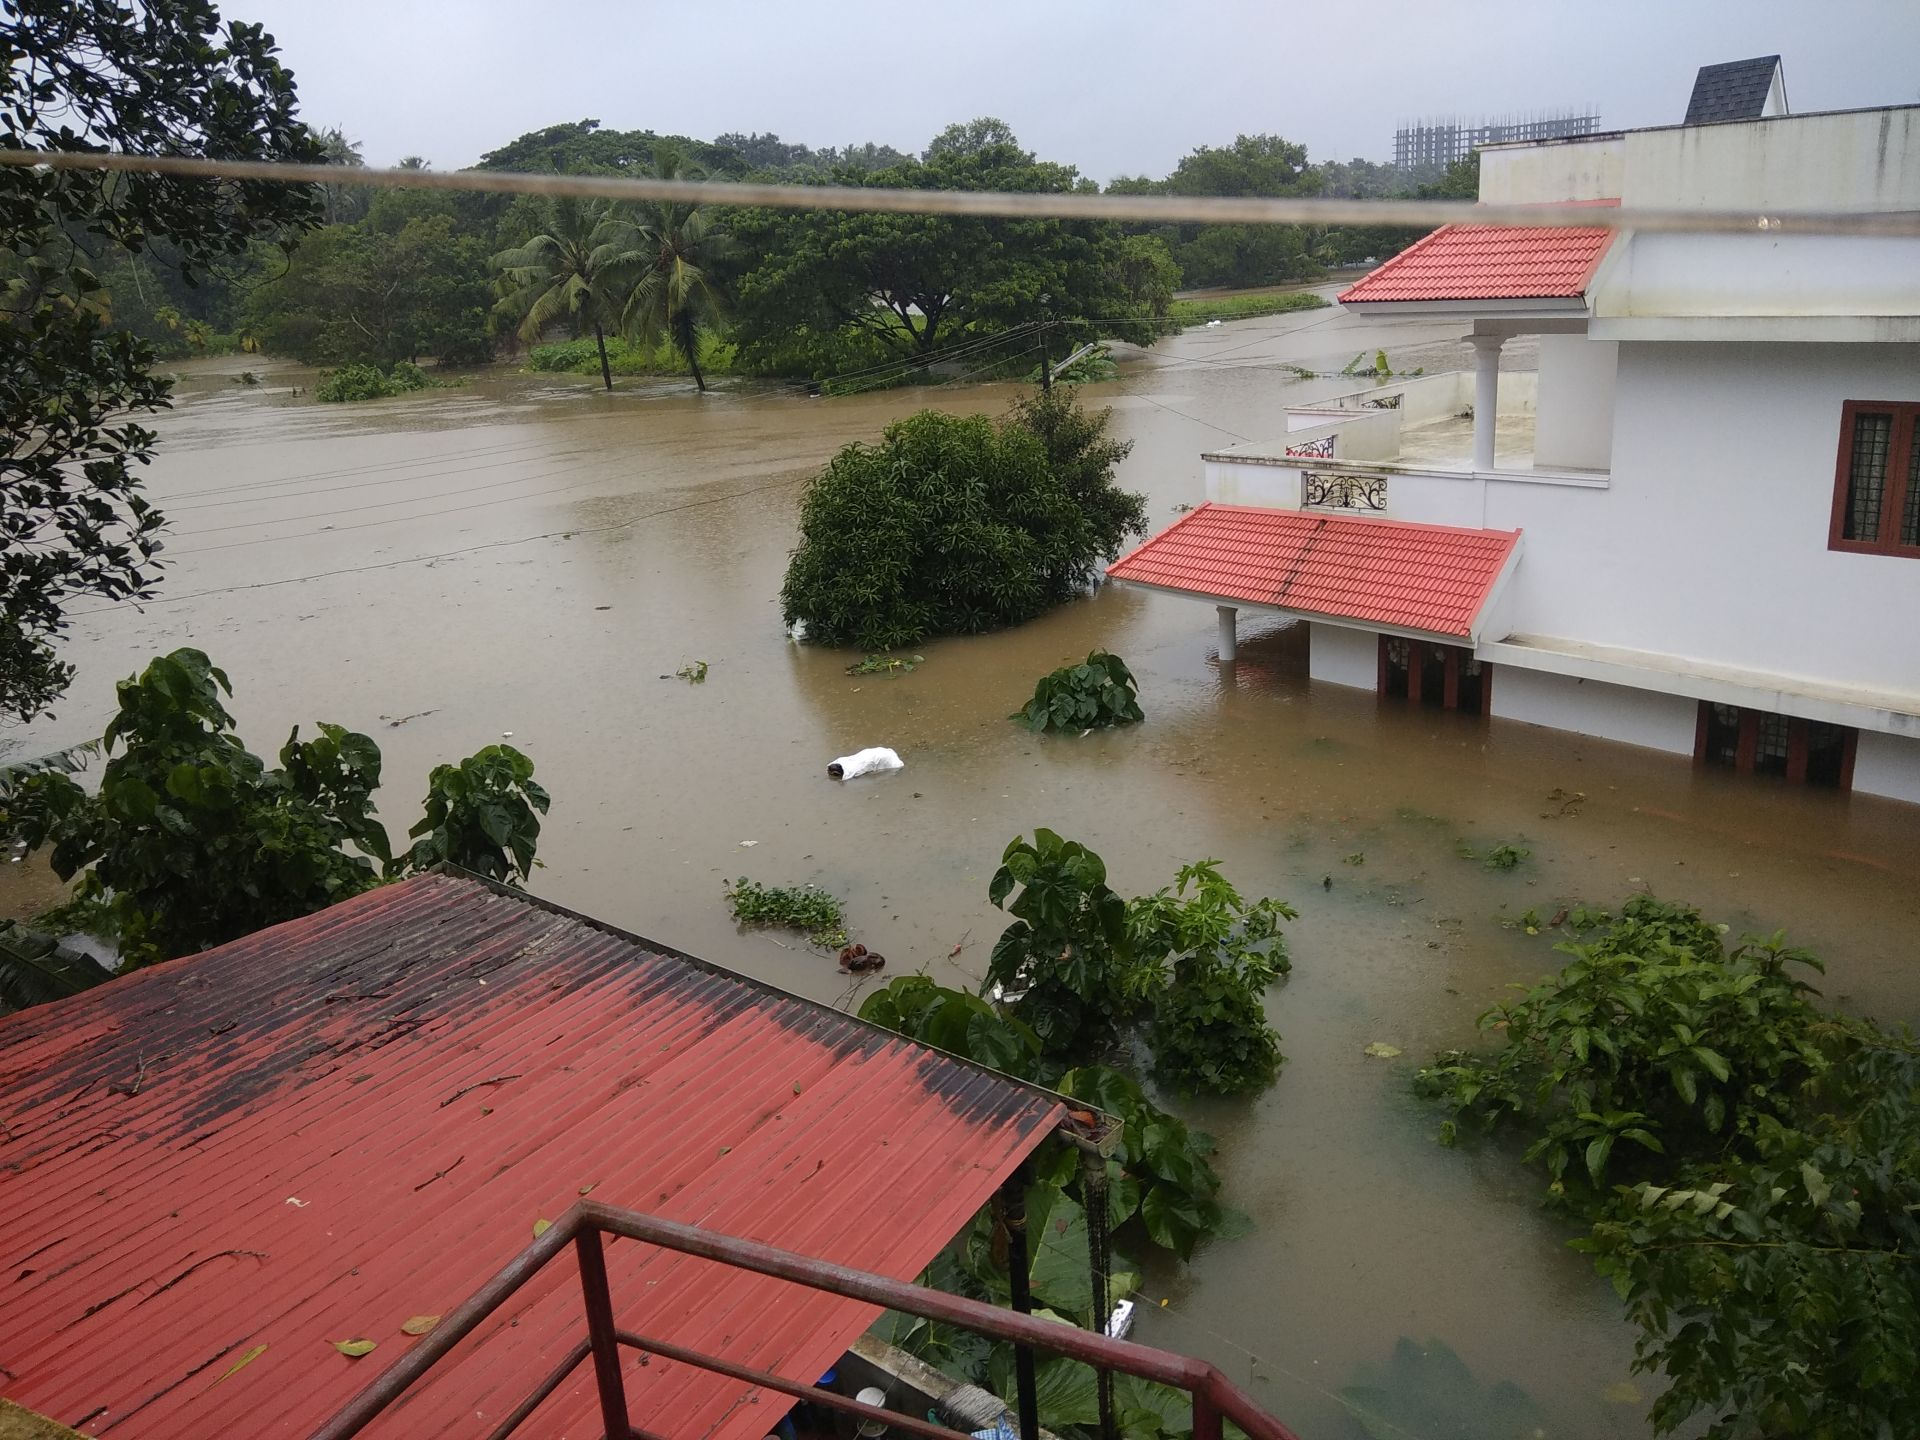 The losses to infrastructure due to the floods and landslides are huge. (Image: Ranjith Siji, Wikimedia Commons: CC BY-SA 4.0)